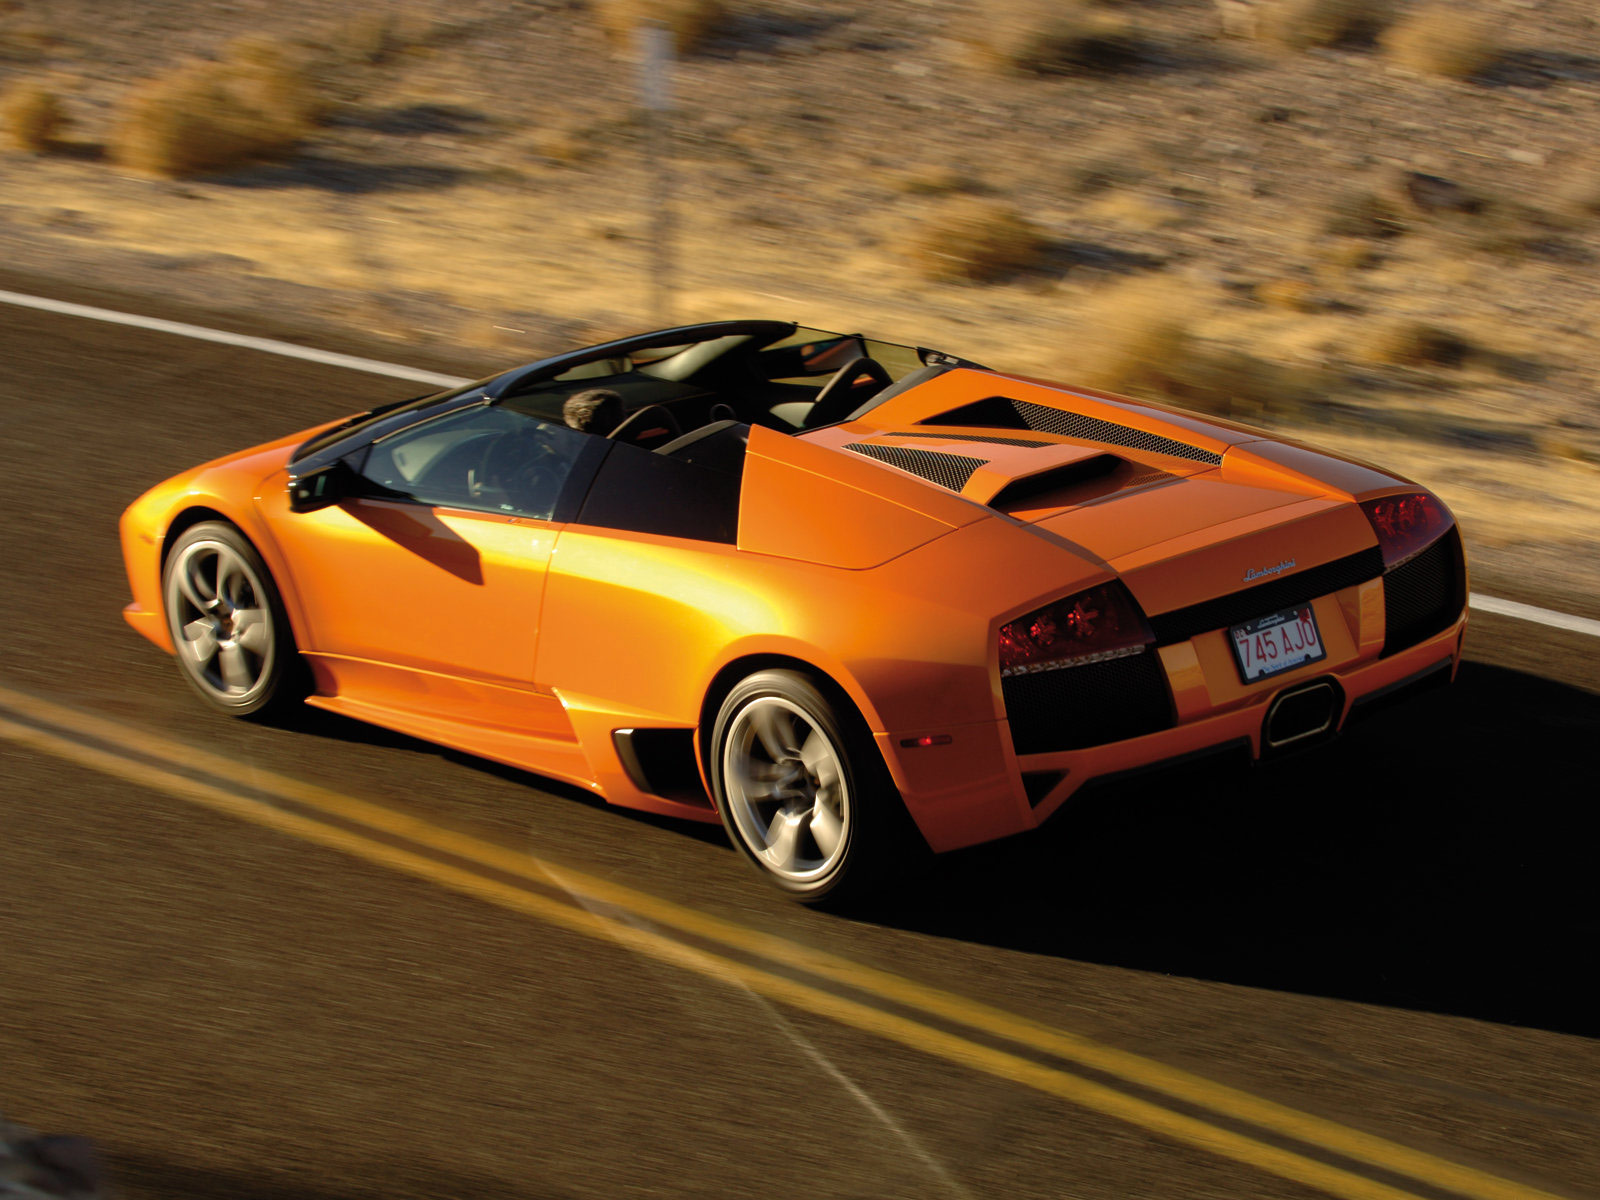 2007 Lamborghini Murcielago Lp640 Roadster Pictures HD Wallpapers Download free images and photos [musssic.tk]